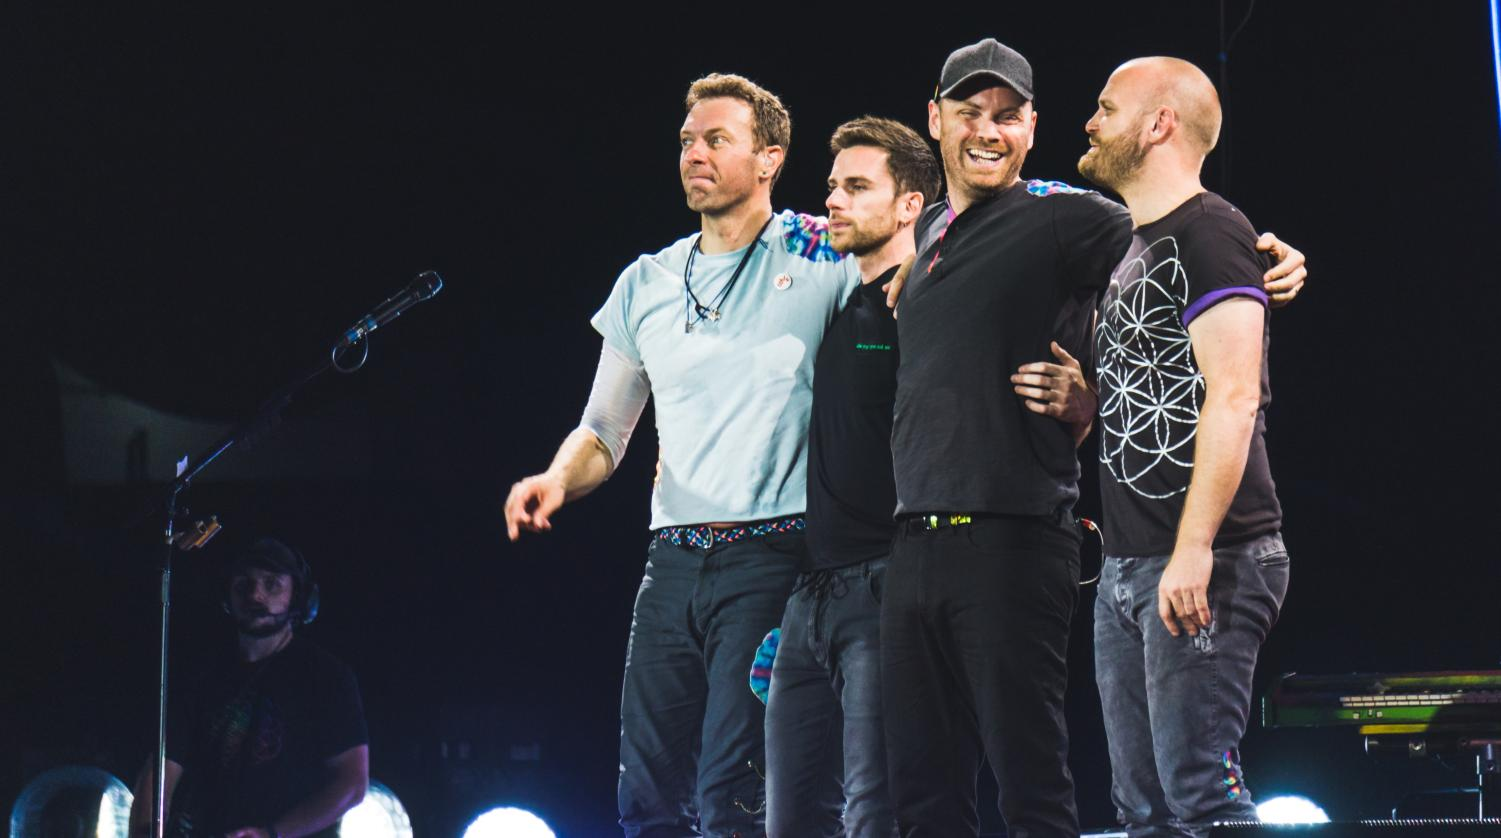 British band Coldplay performing a concert in 2017.